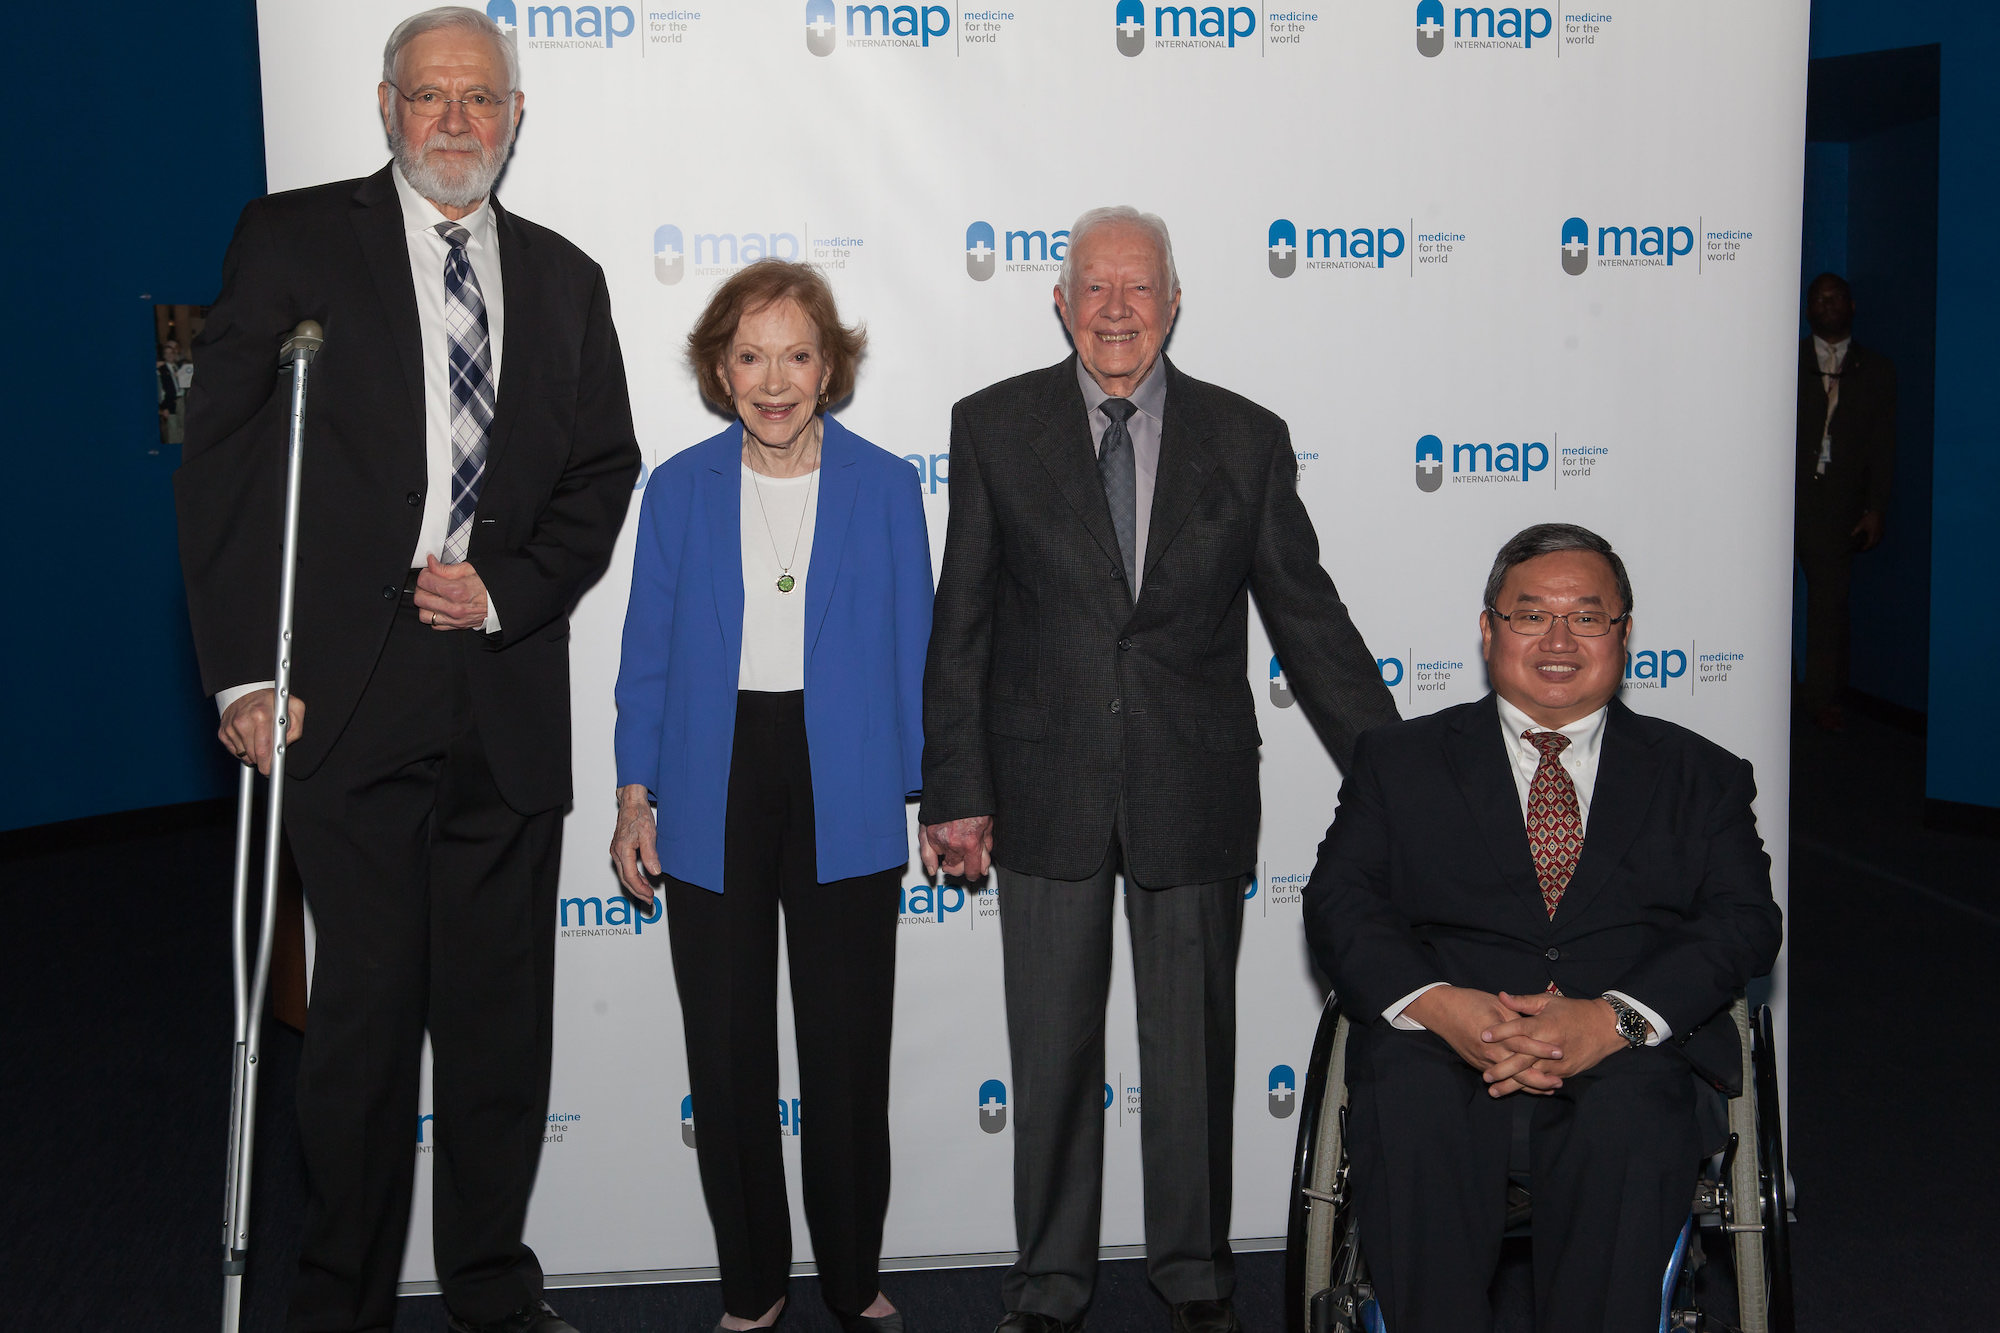 TOP: DR. BILL FOEGE, PRESIDENT JIMMY CARTER AND MRS. ROSALYNN CARTER, AND STEVE STIRLING AT THE 2018 GLOBAL HEALTH AWARDS  BOTTOM: AMBASSADOR ANDREW J. YOUNG JR. AND DR. ROBERT REDFIELD, MD (ON BEHALF OF THE CDC) ACCEPTING THEIR AWARDS AT THE 2019 EVENT